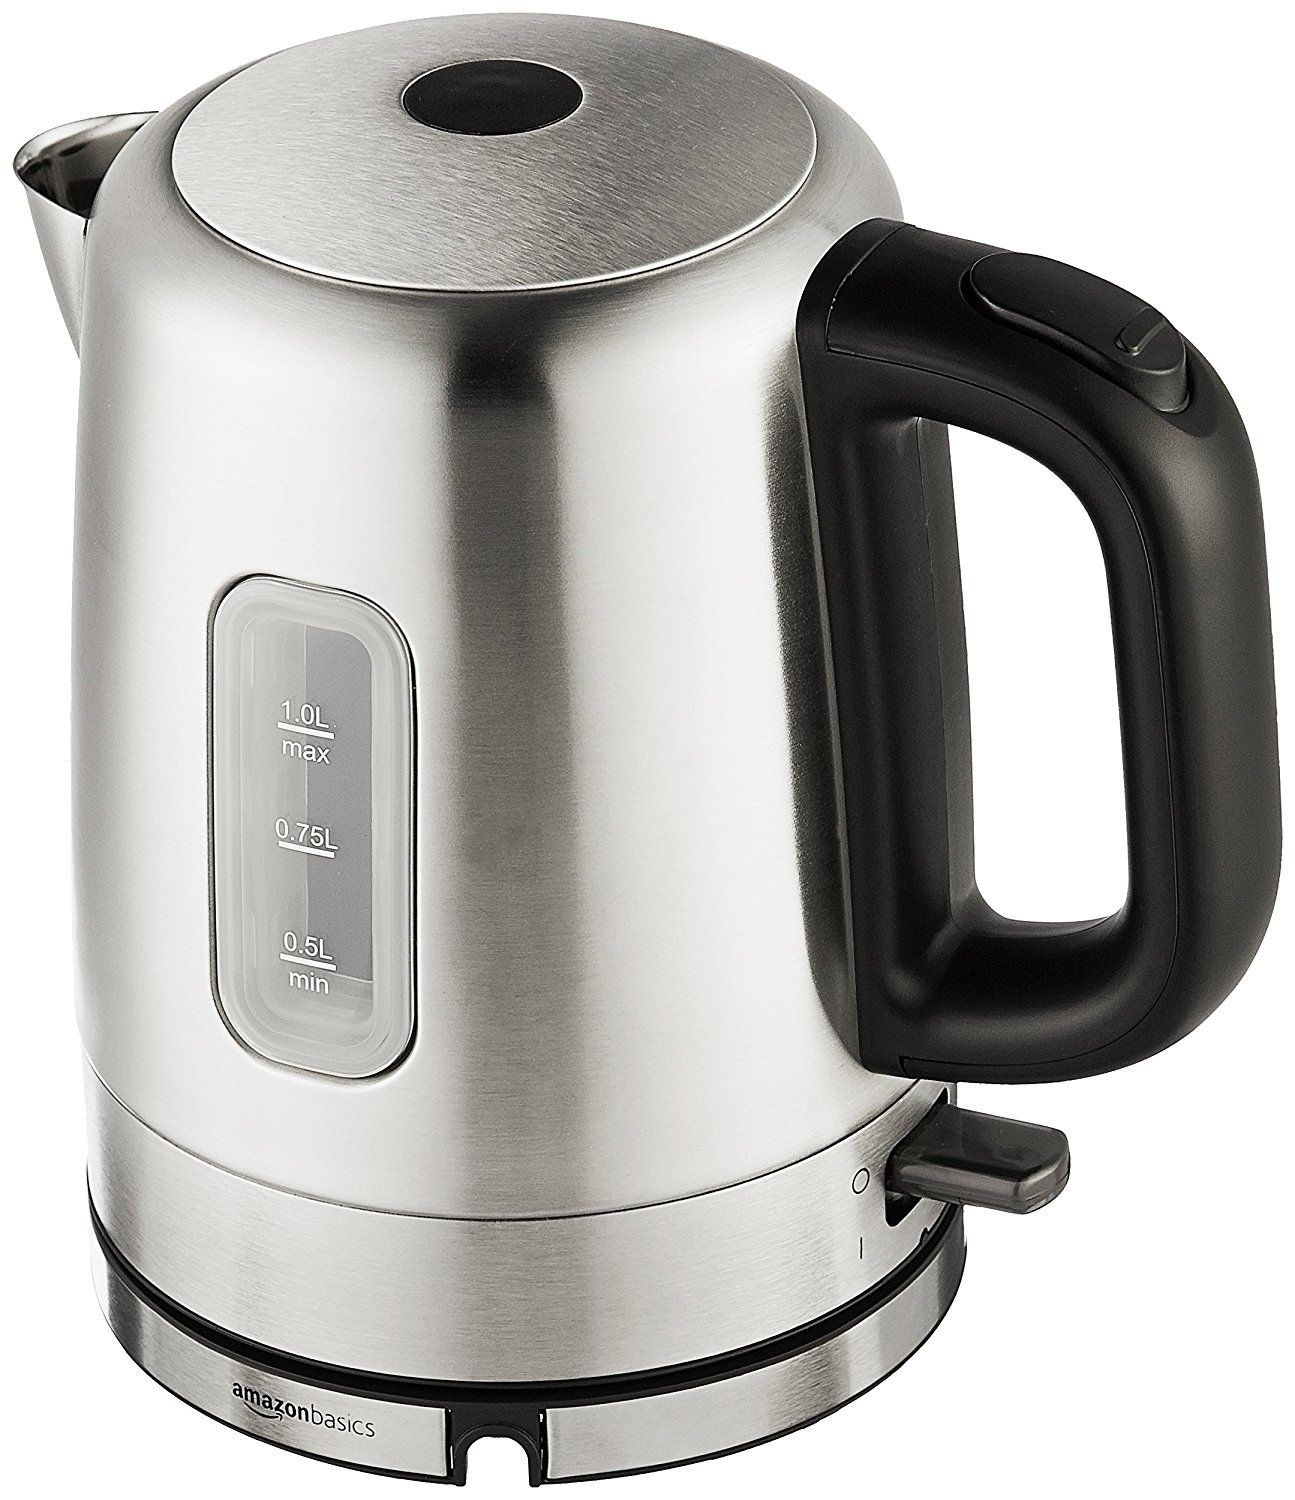 Electric Water Kettle With 1 0 Liter Capacity And 1500 Watts Of Power For Fast Results 120v 60hz Cordless Desig Electric Water Kettle Kettle Electric Kettle